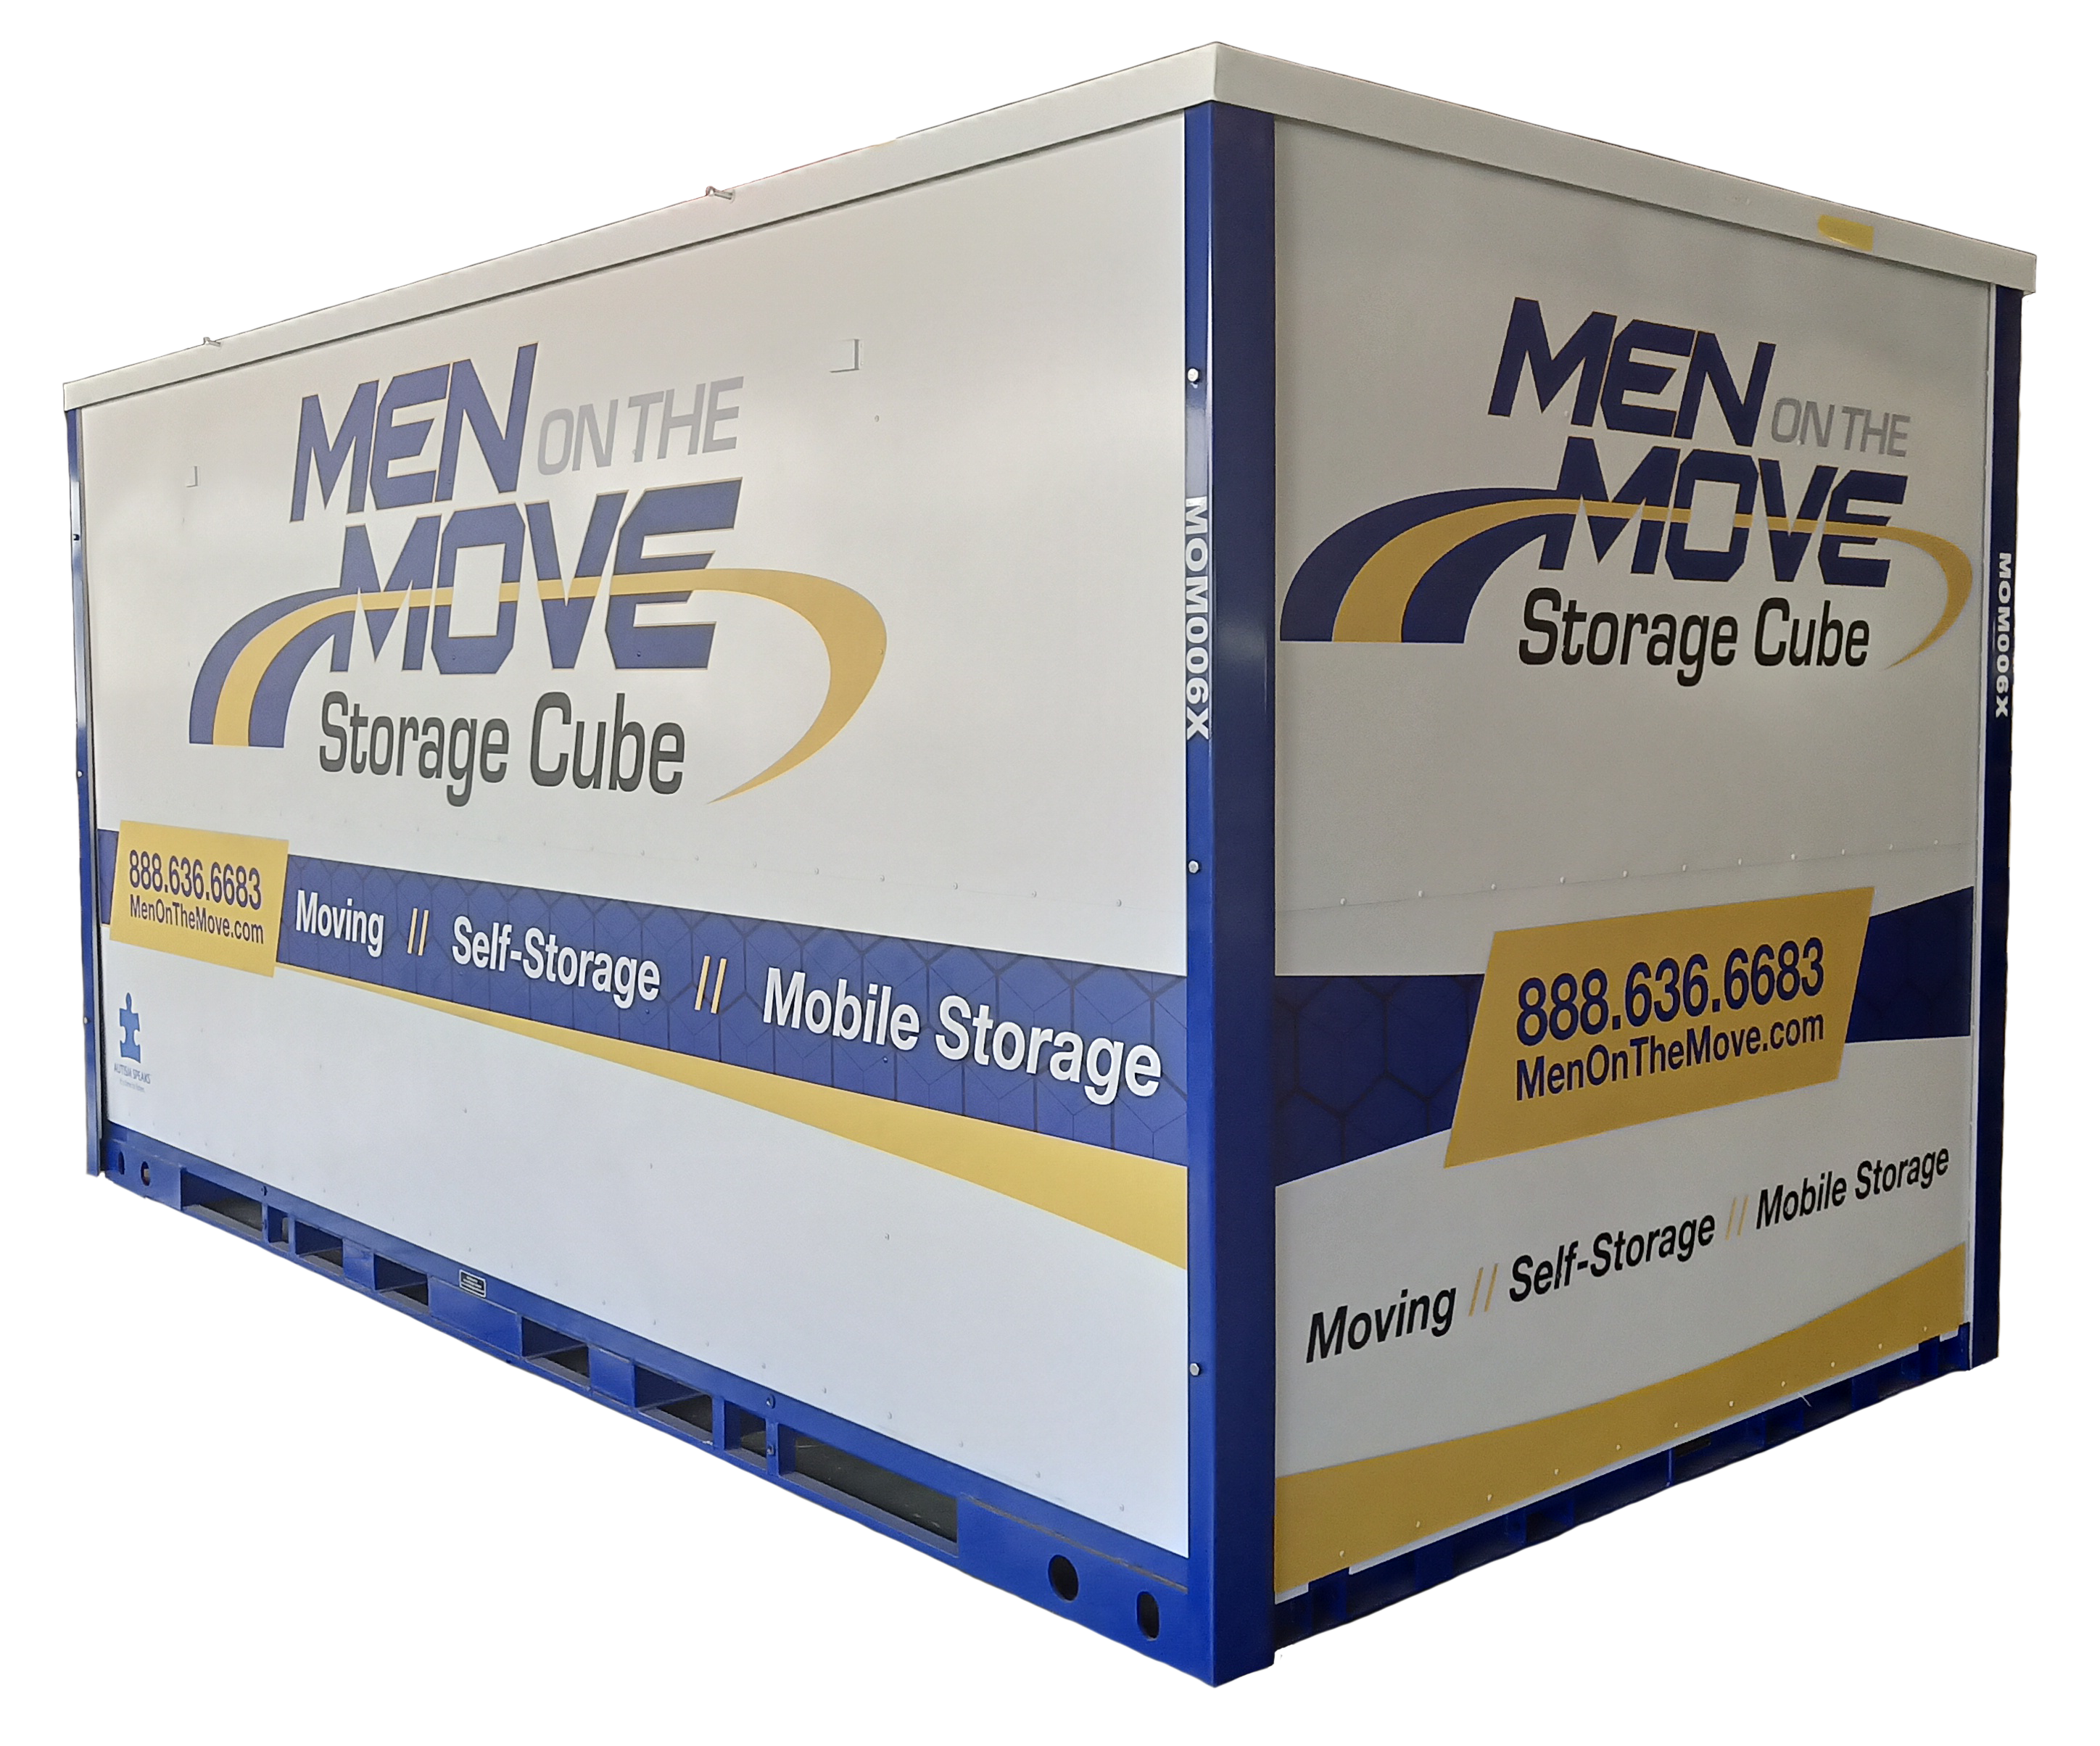 Men On The Move Storage Cube